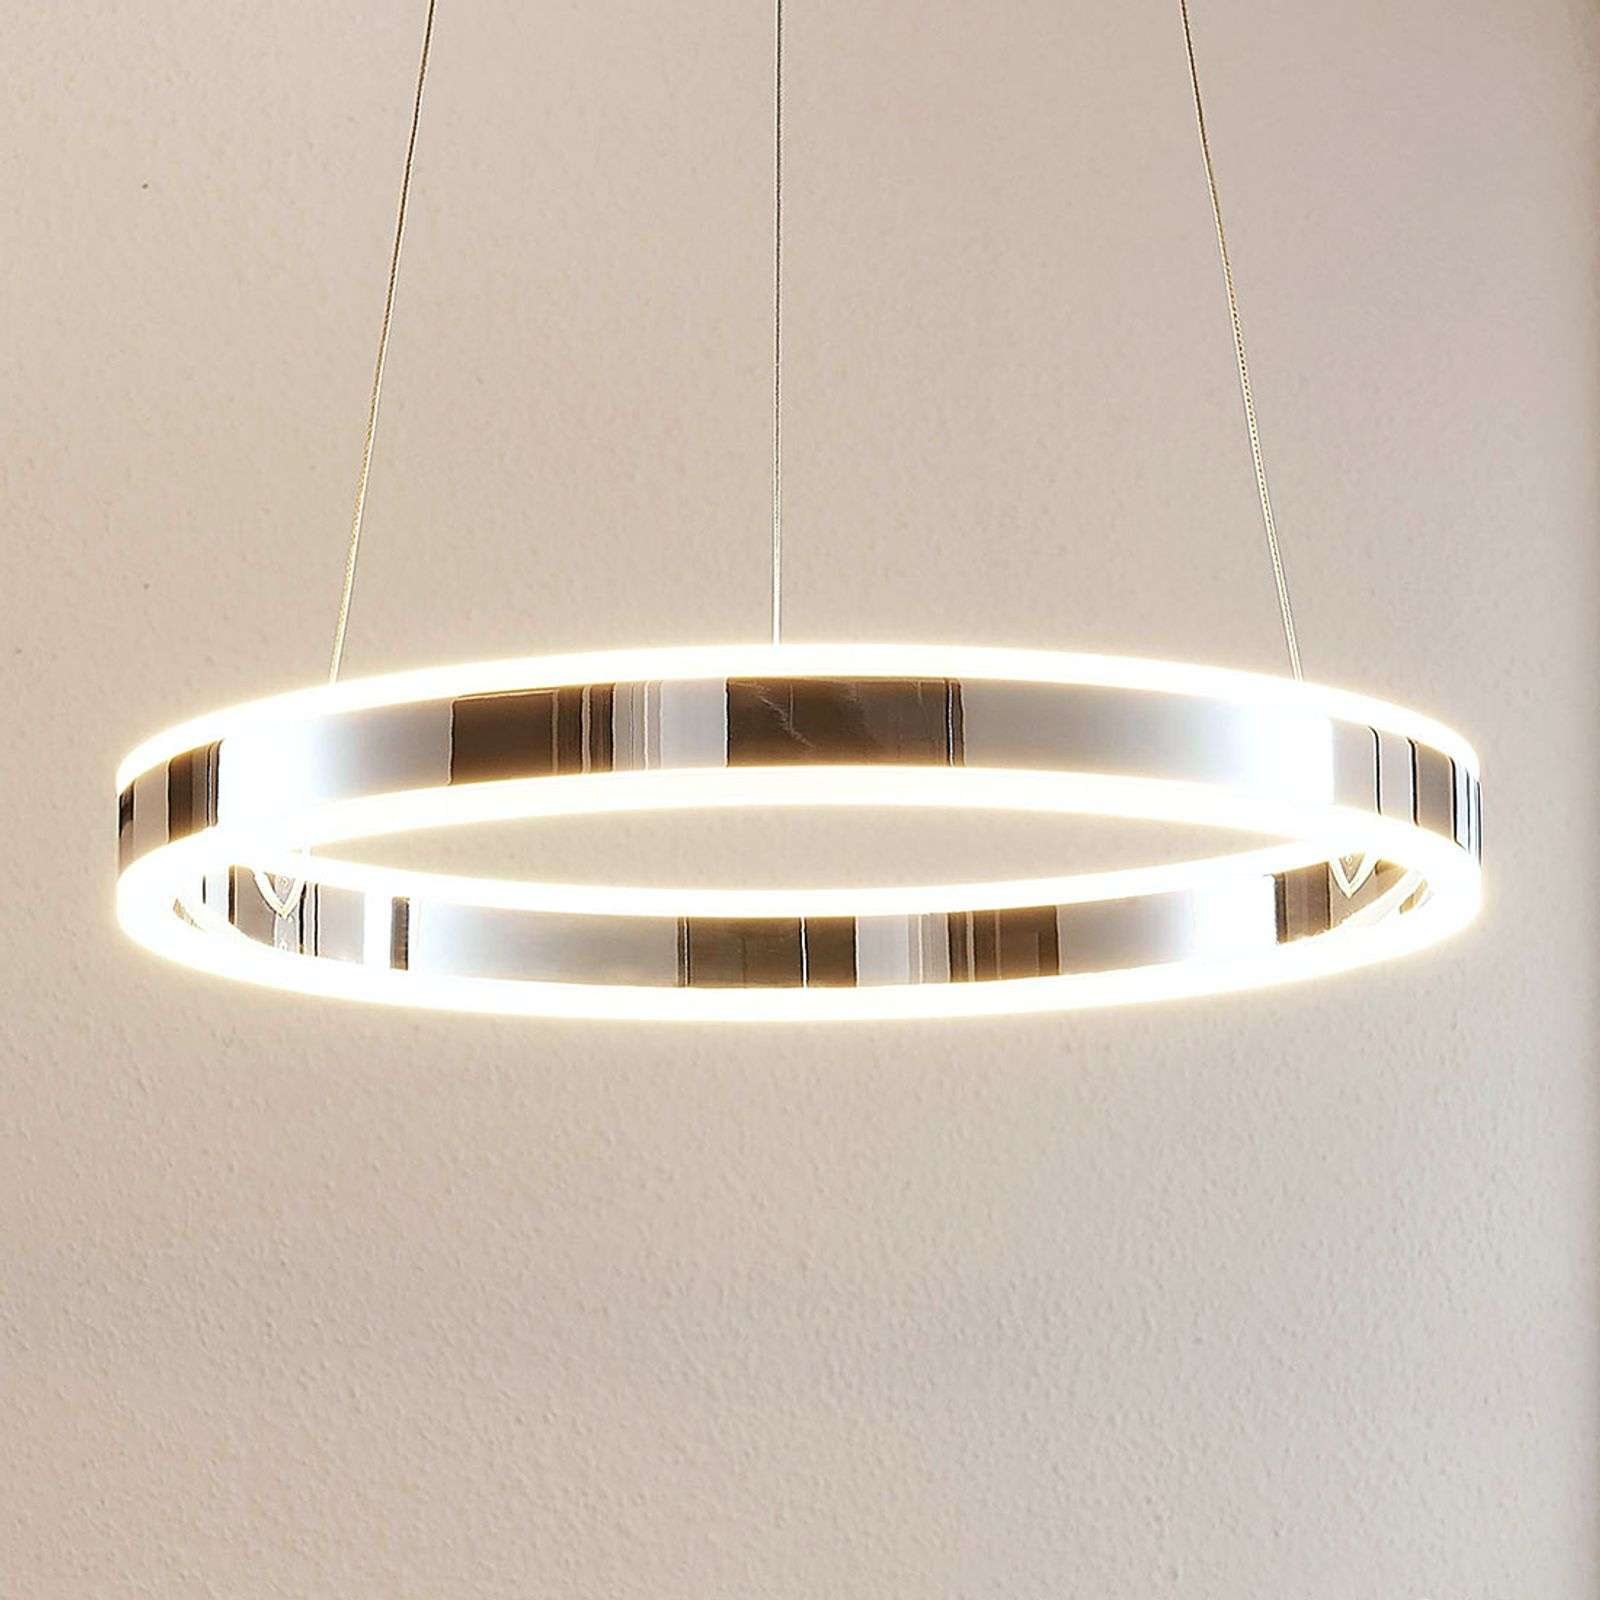 Suspension LED Lyani en chromé, dimmable, 50 cm